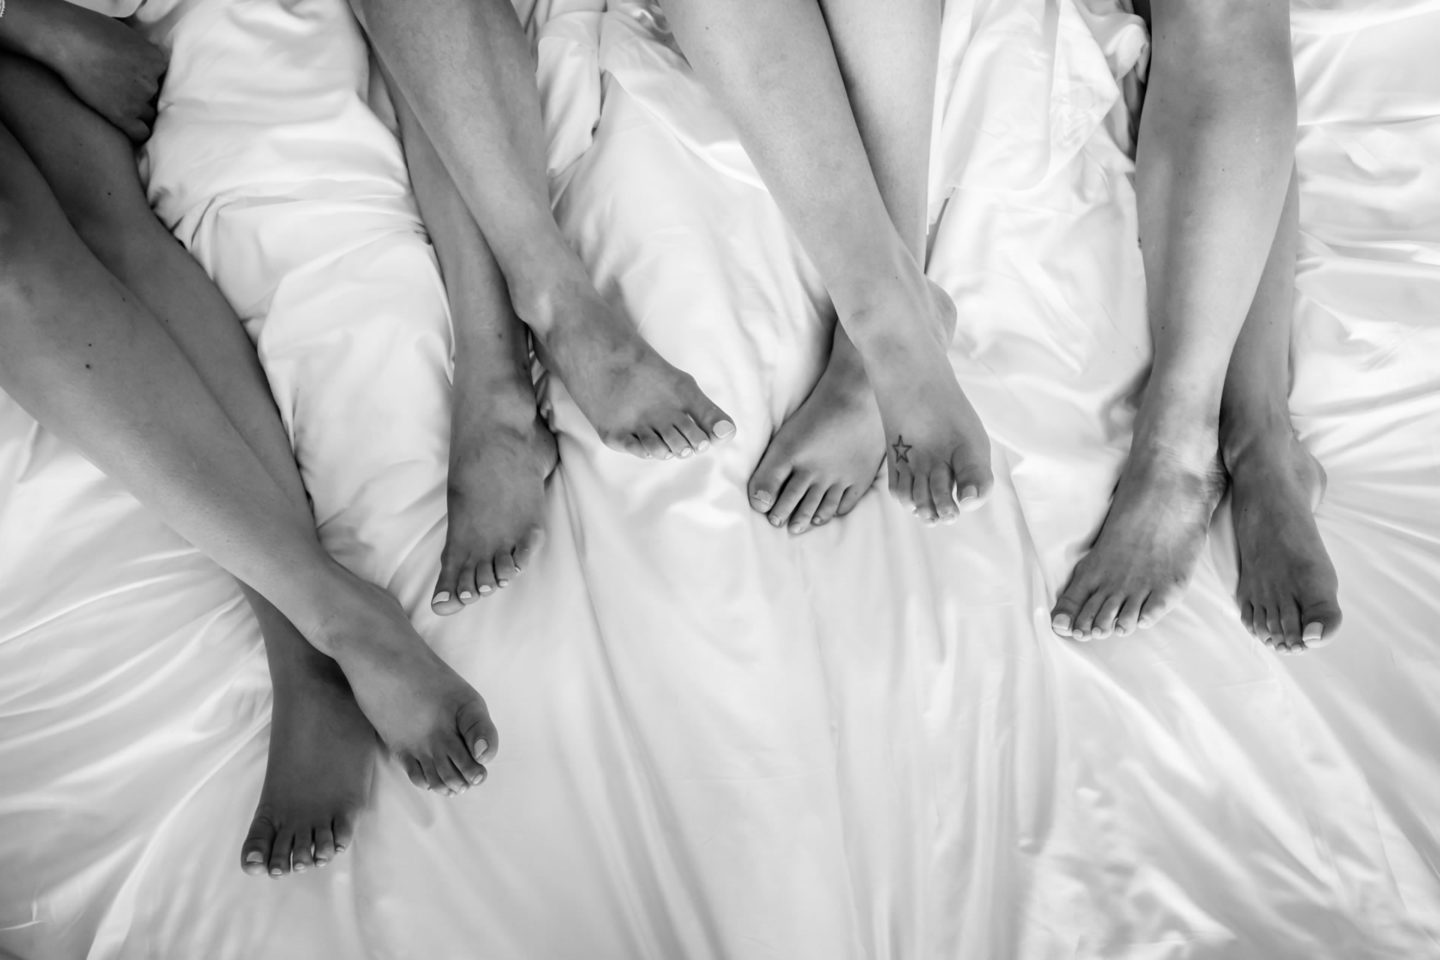 Feet :: Crazy wedding at Vincigliata Castle and Villa San Michele :: Luxury wedding photography - 6 :: Feet